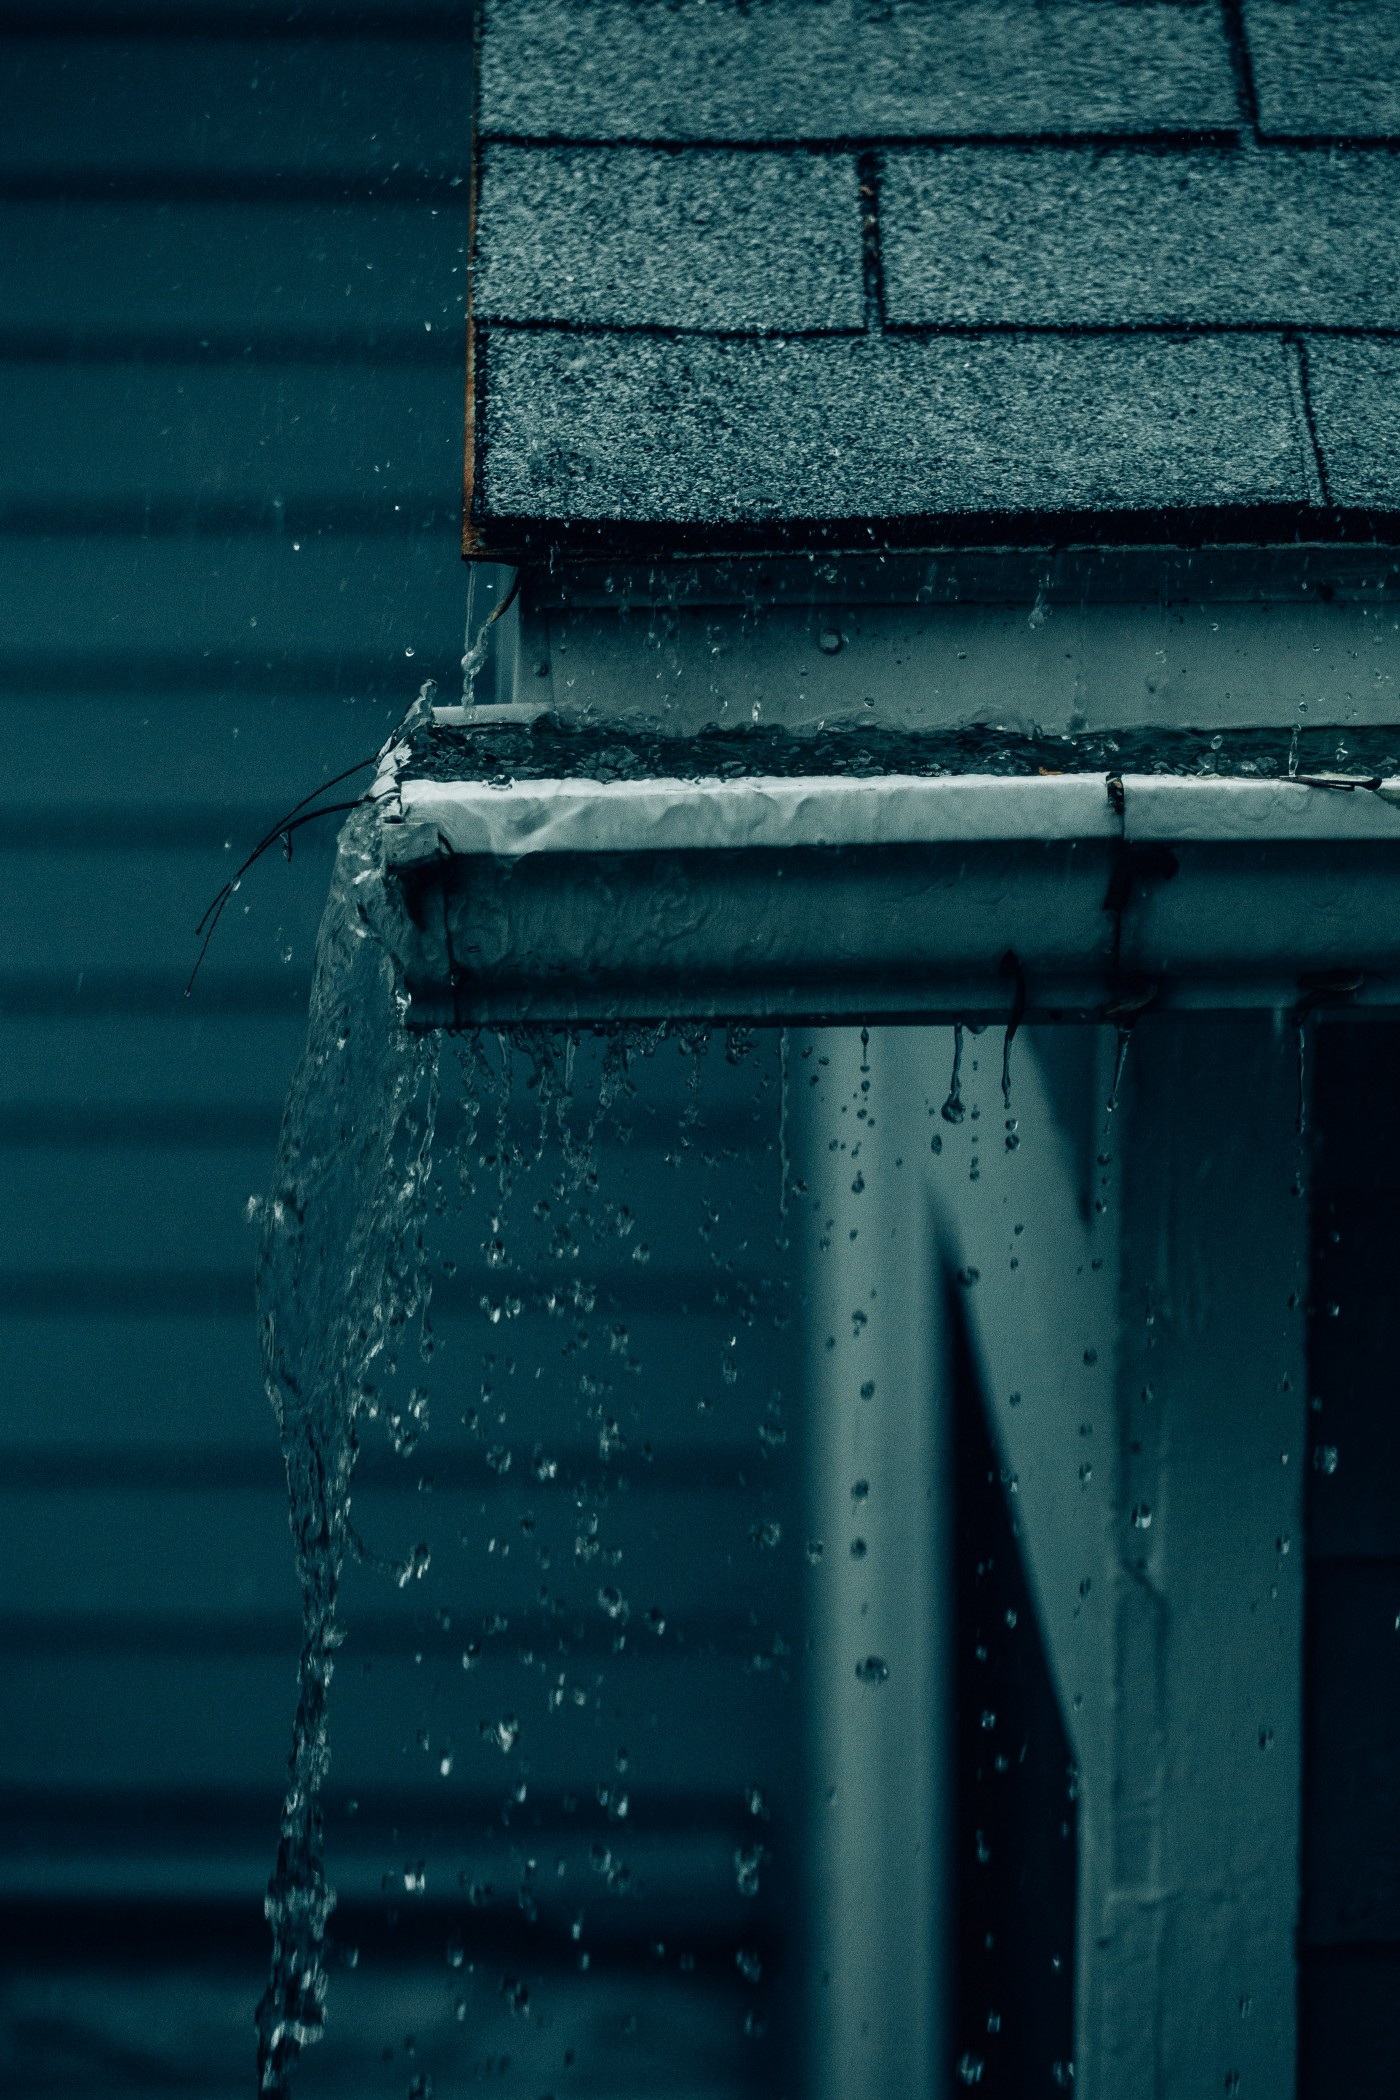 Rain falling on a rooftop. The rain runs into a gutter which is overflowing with water.